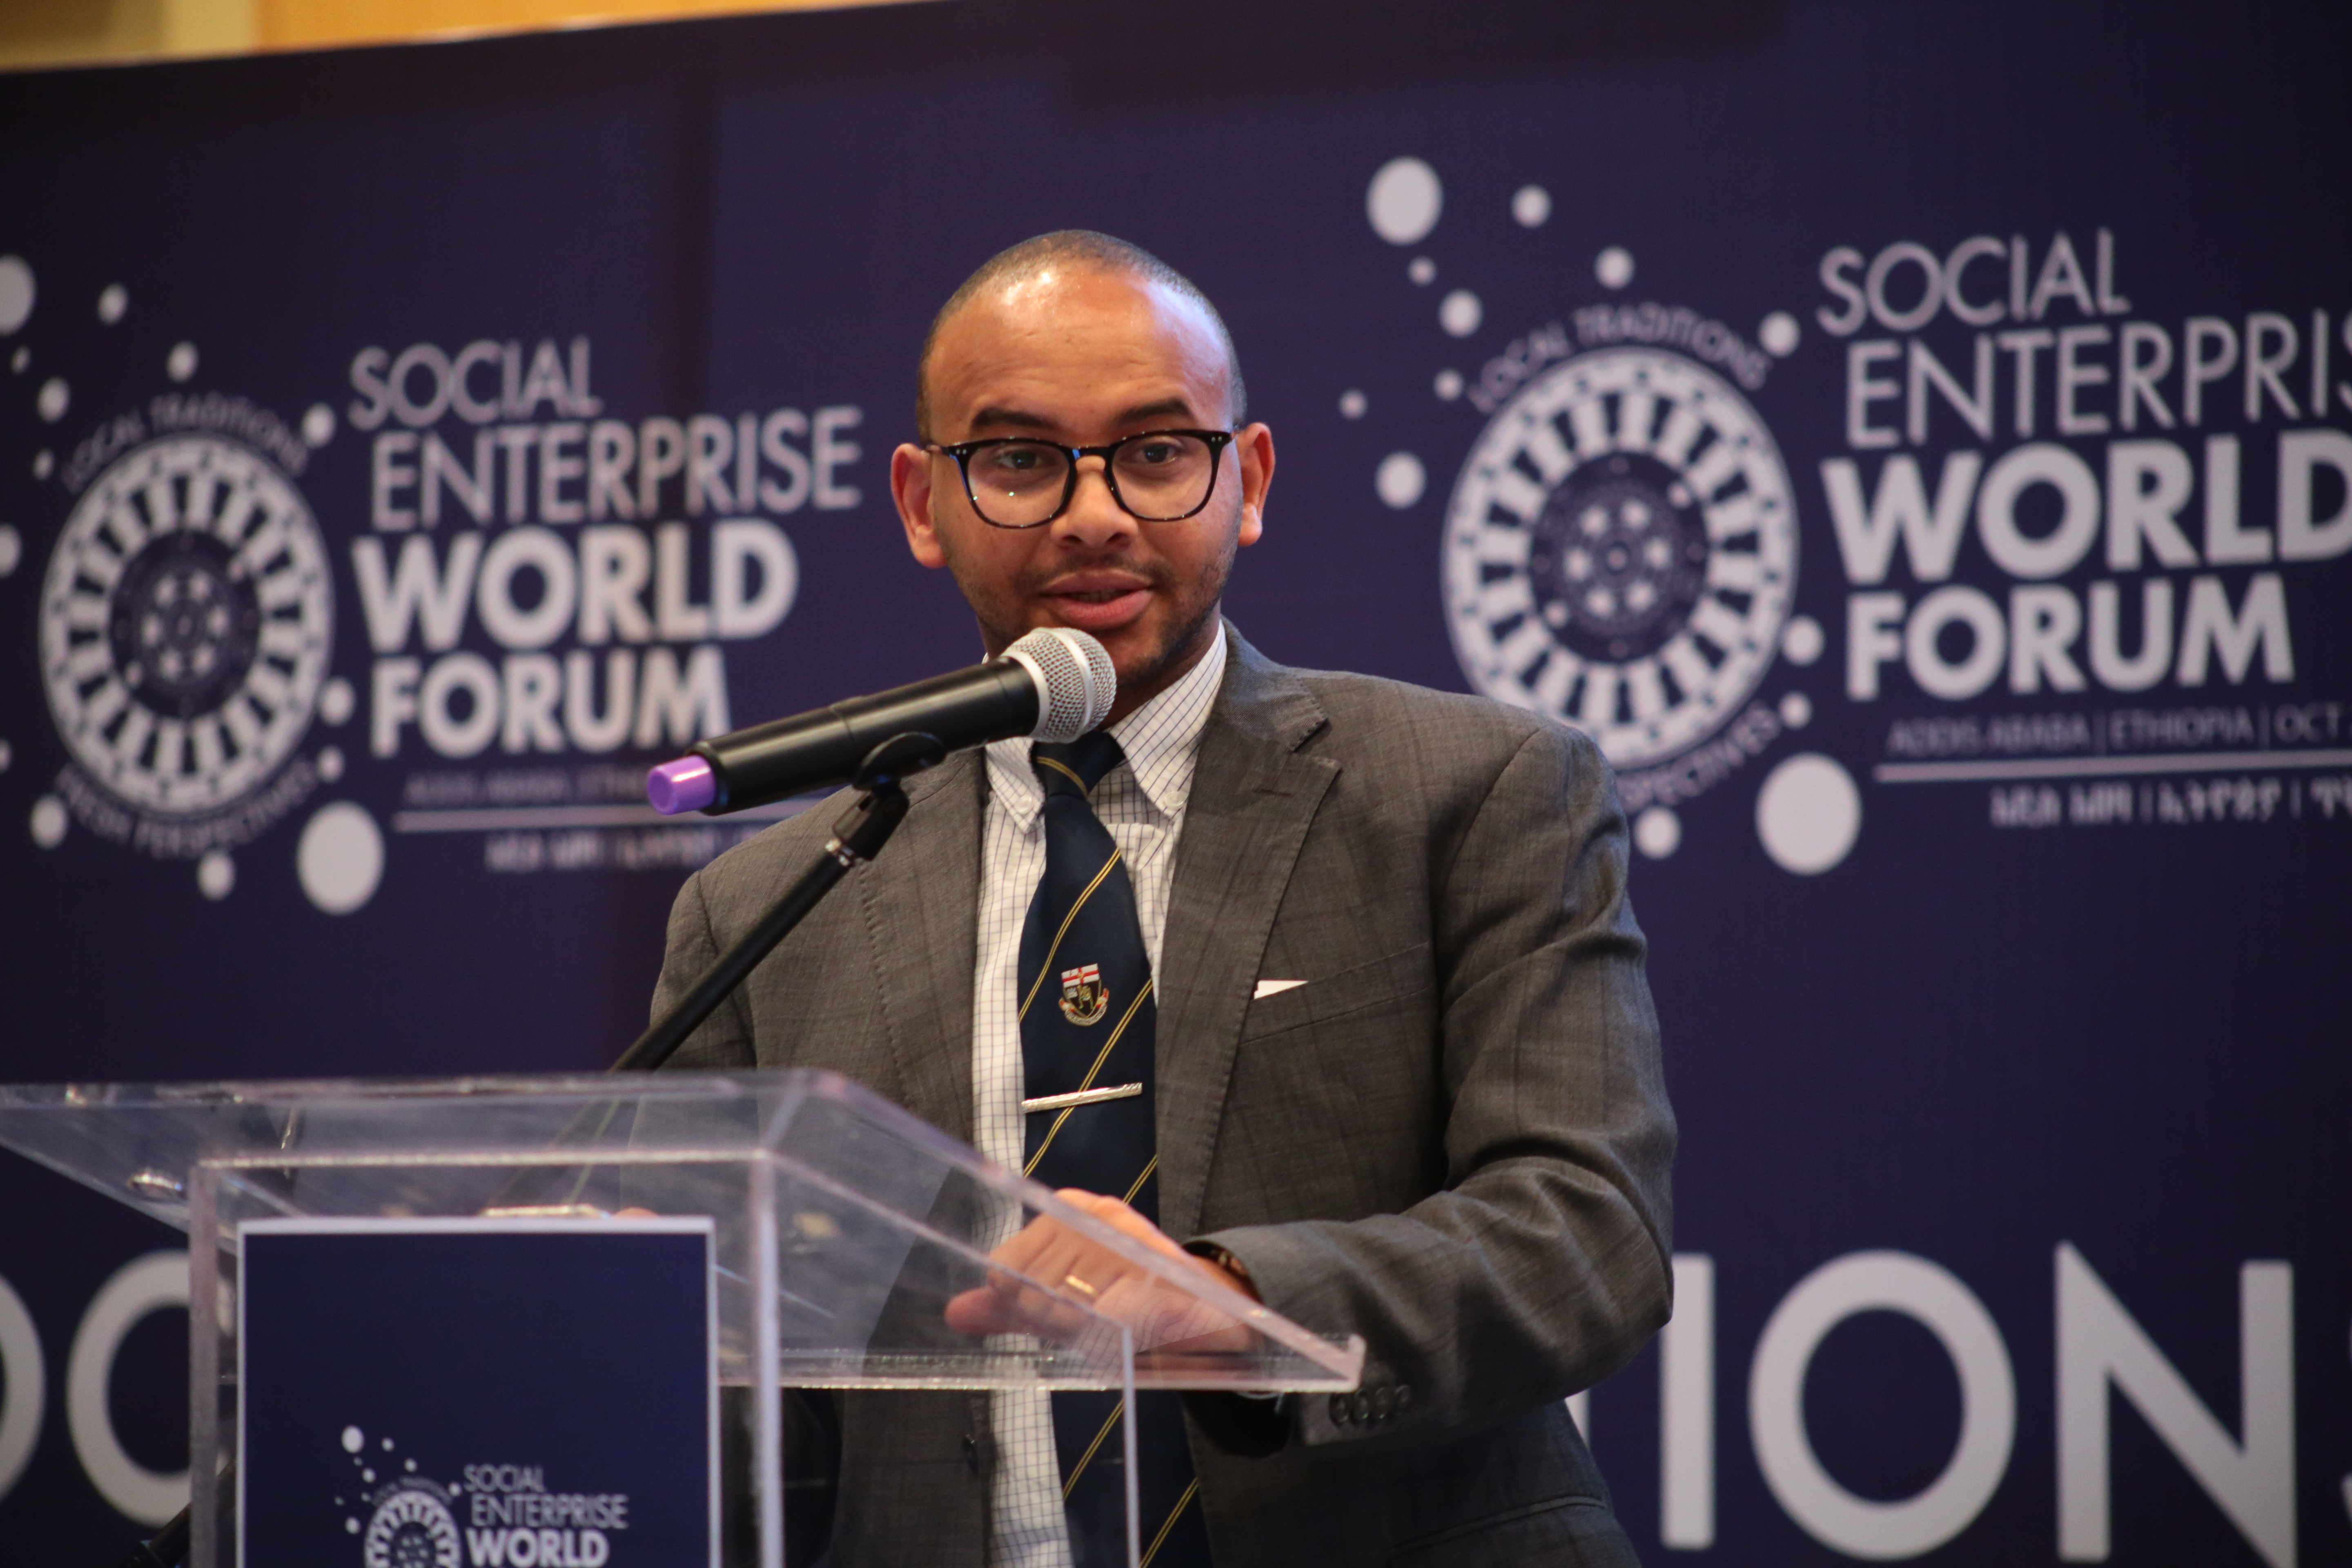 Ethiopian government official SEWF 2019